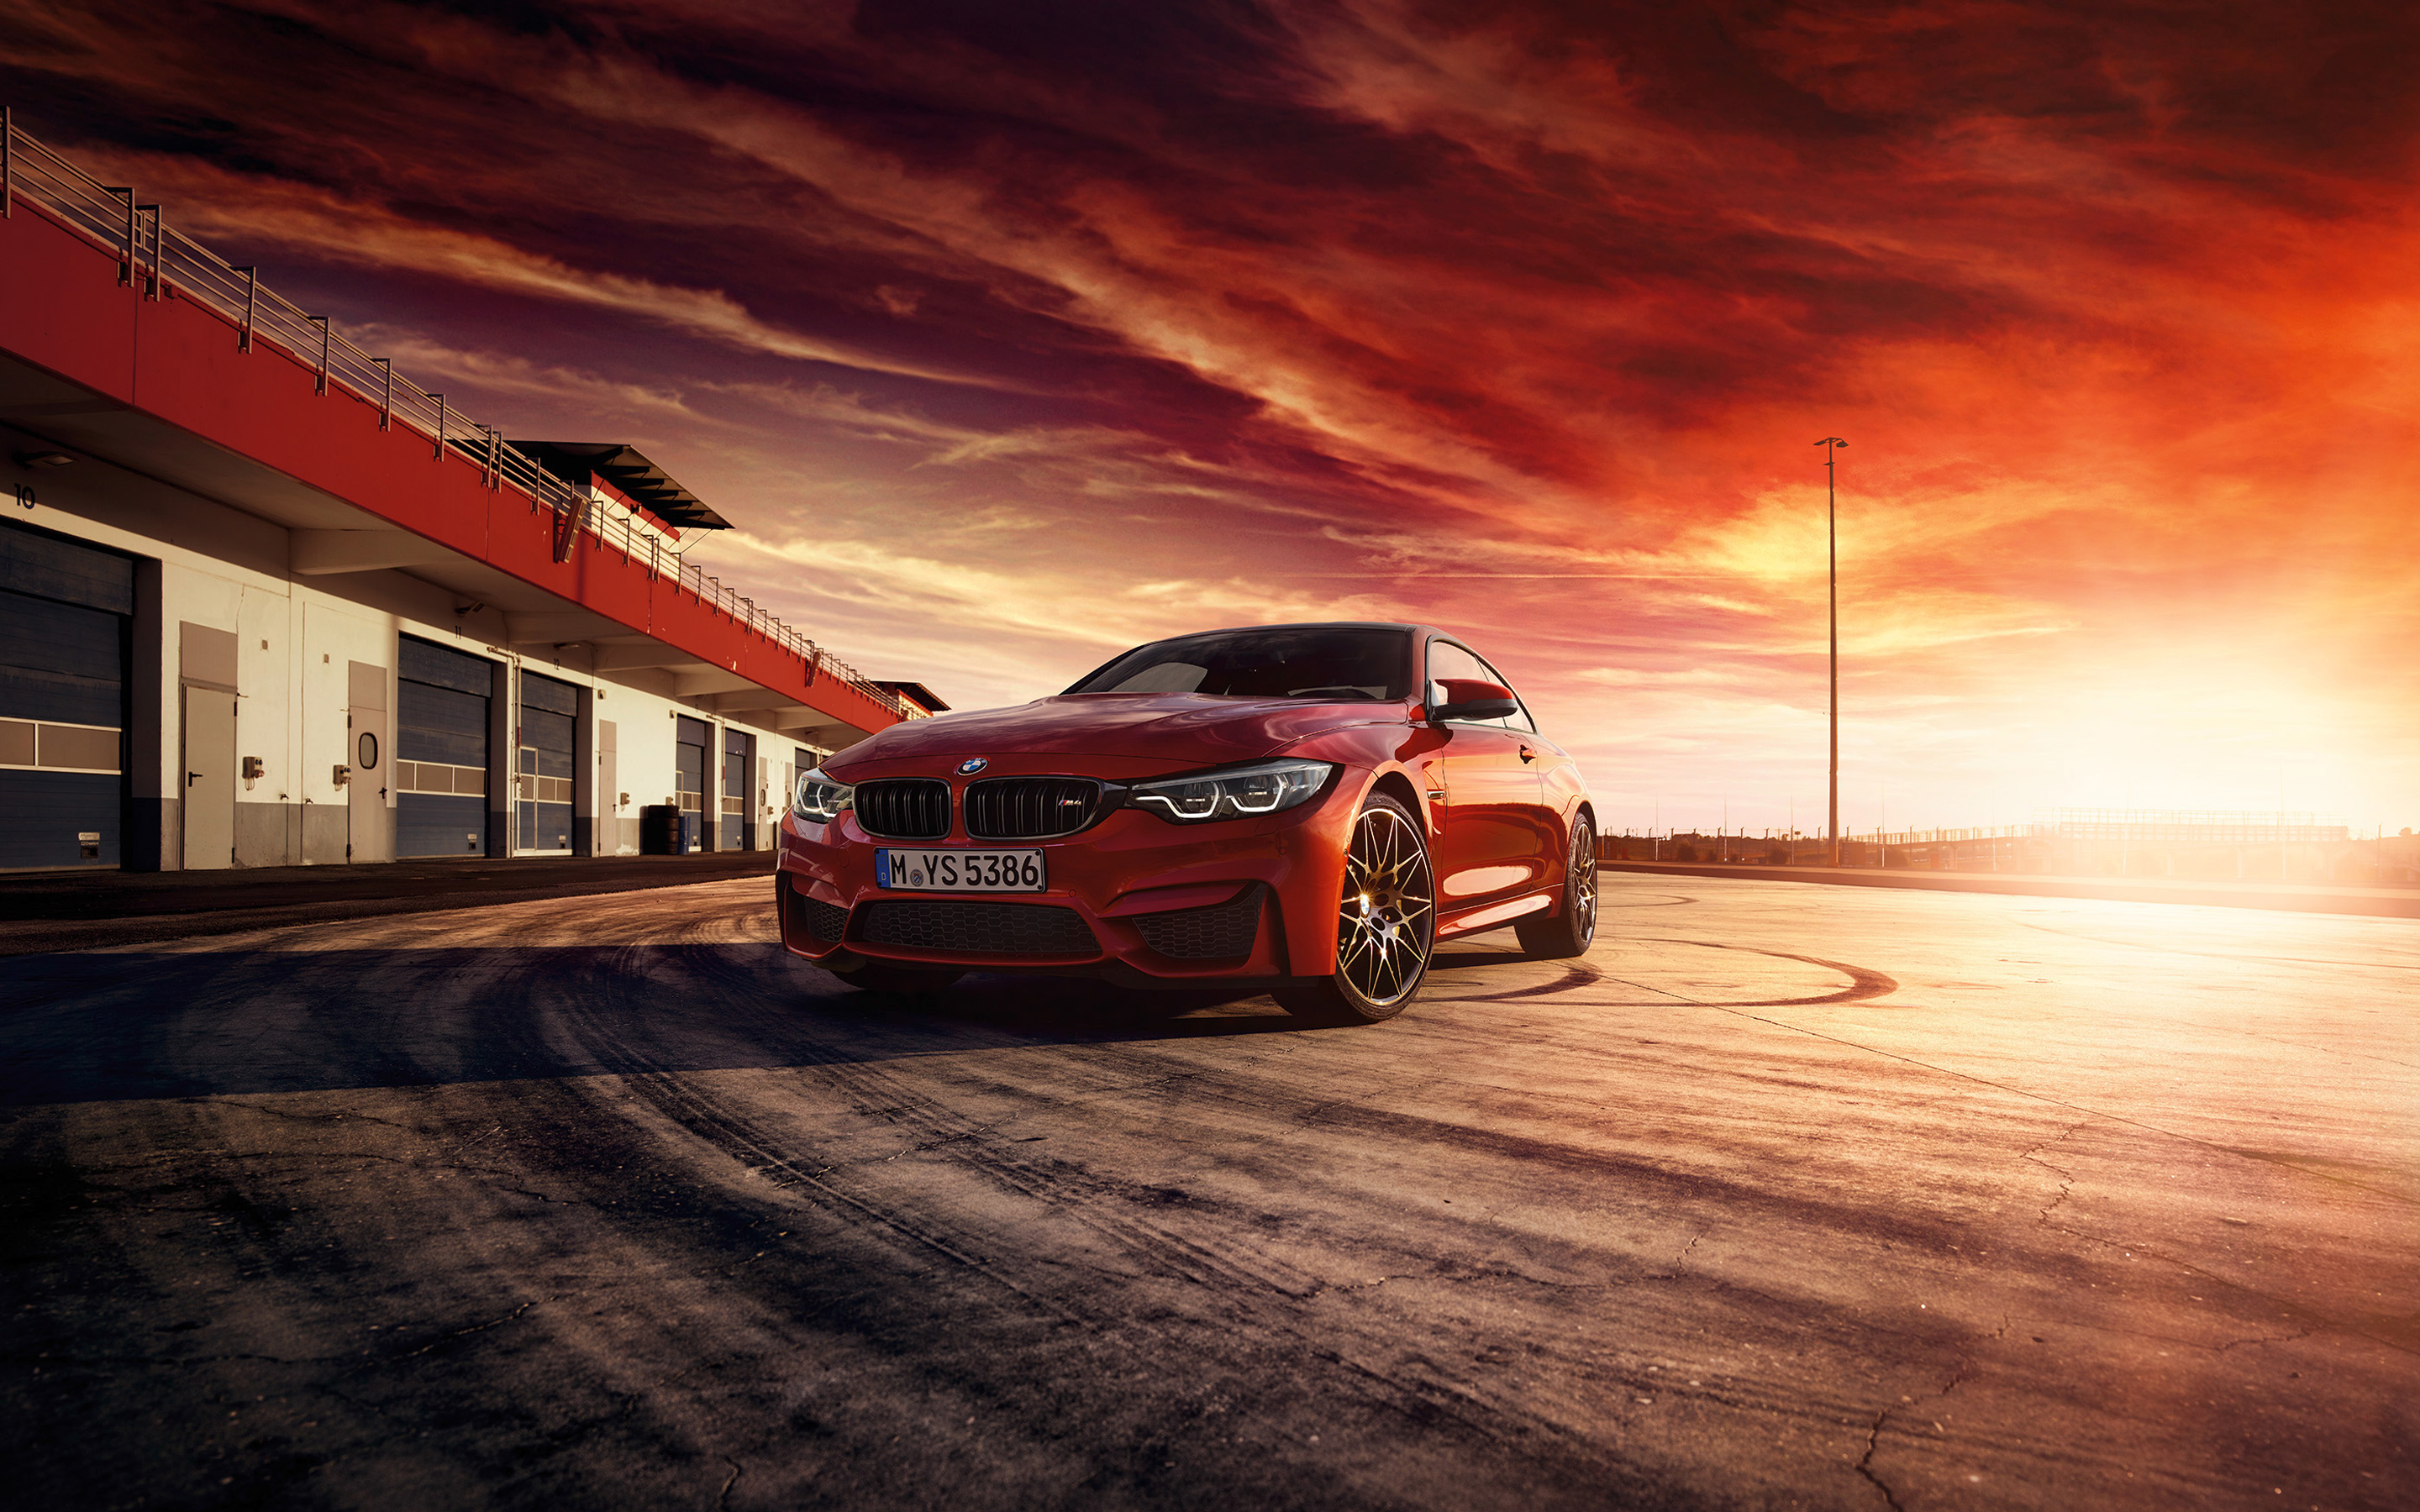 2880x1800 - BMW M4 Wallpapers 19